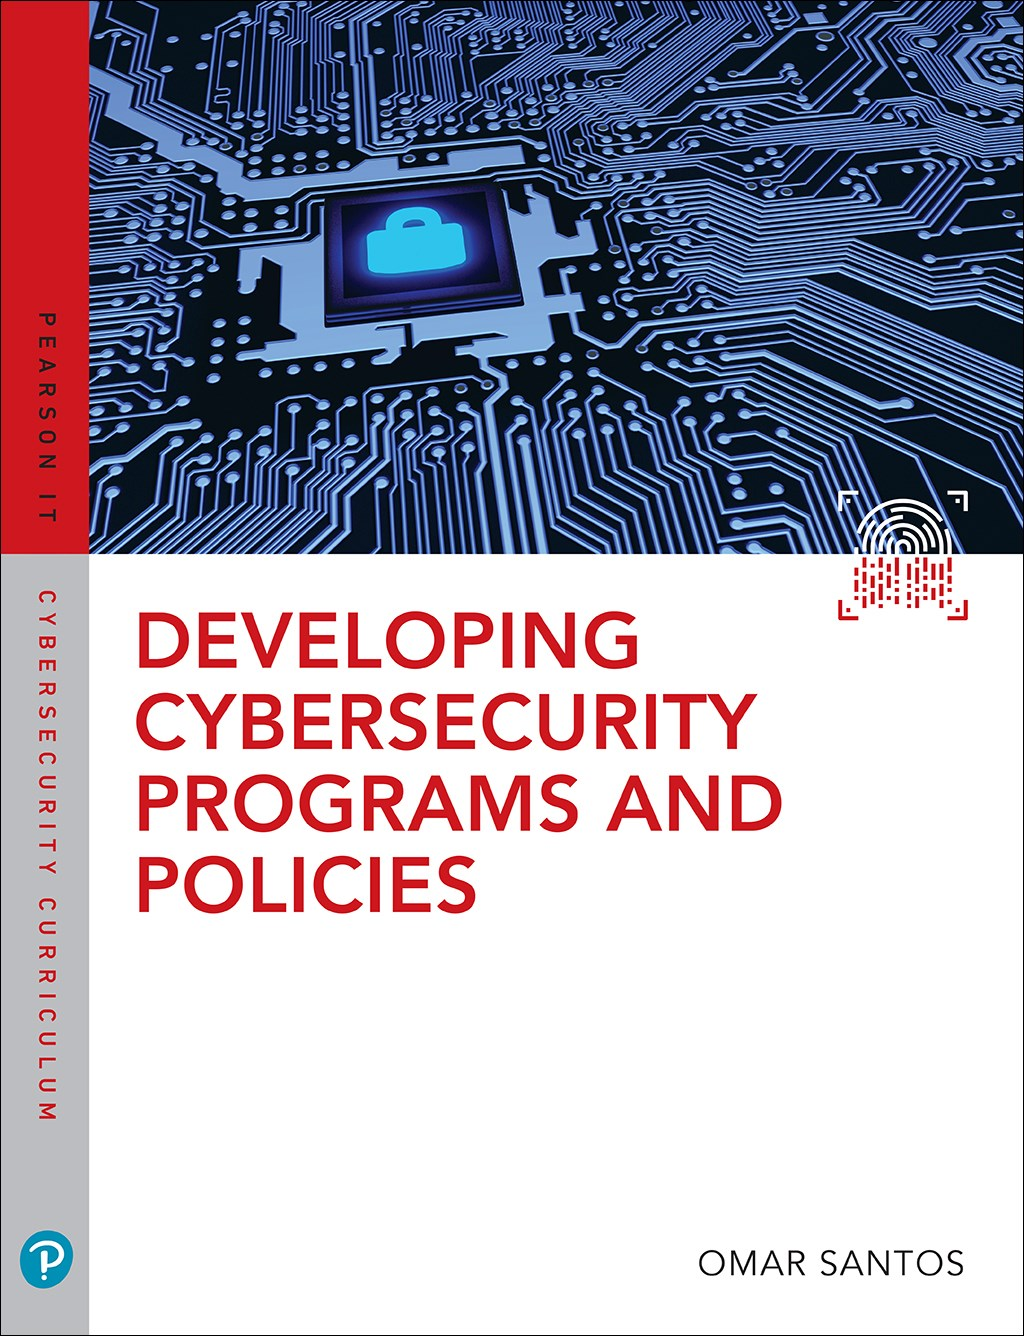 Developing Cybersecurity Programs and Policies, 3rd Edition